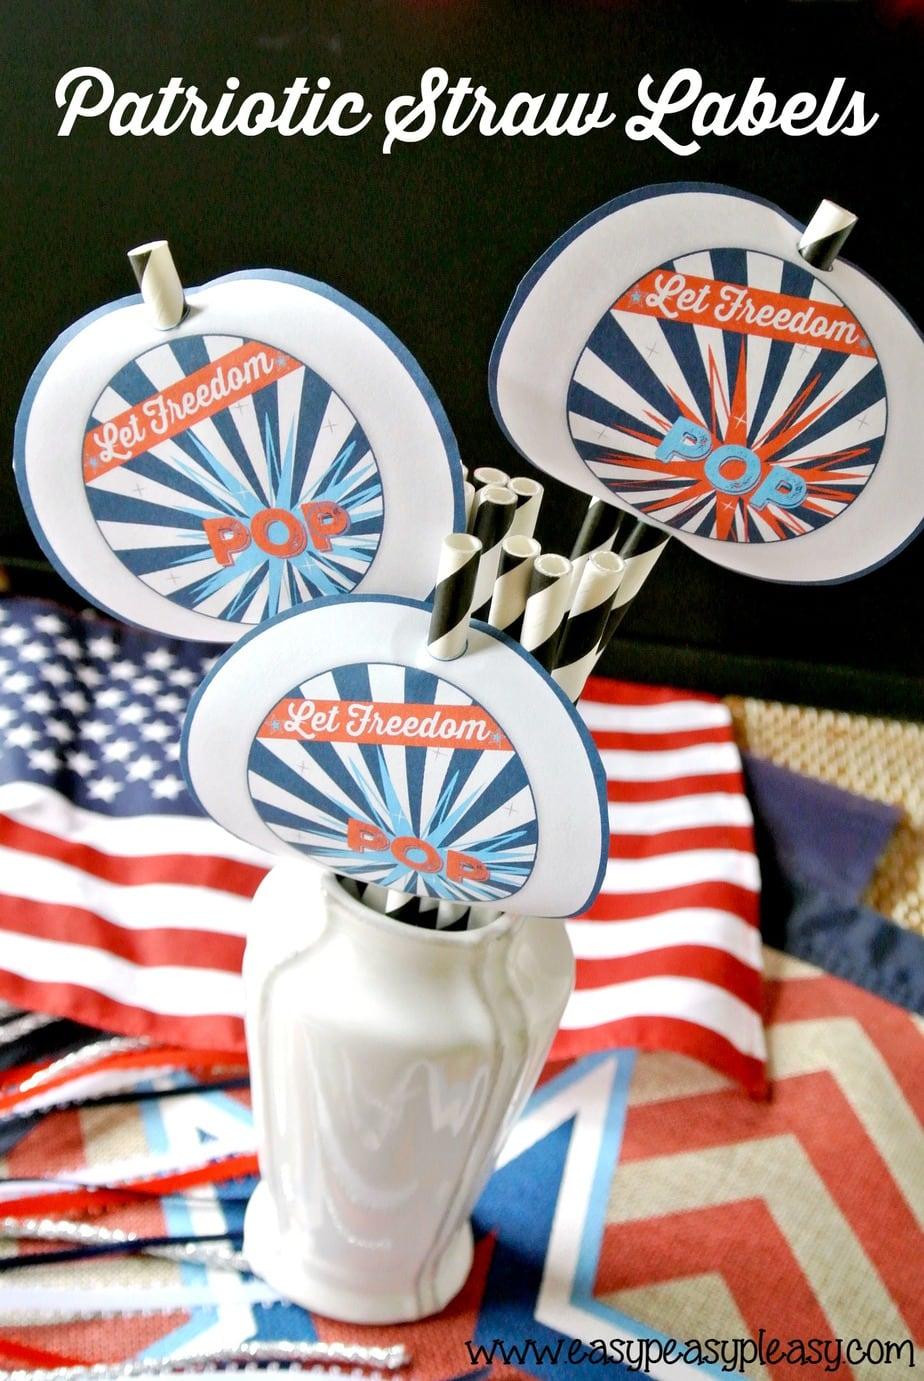 Free Printable Patriotic Party Pack Straw Labels.